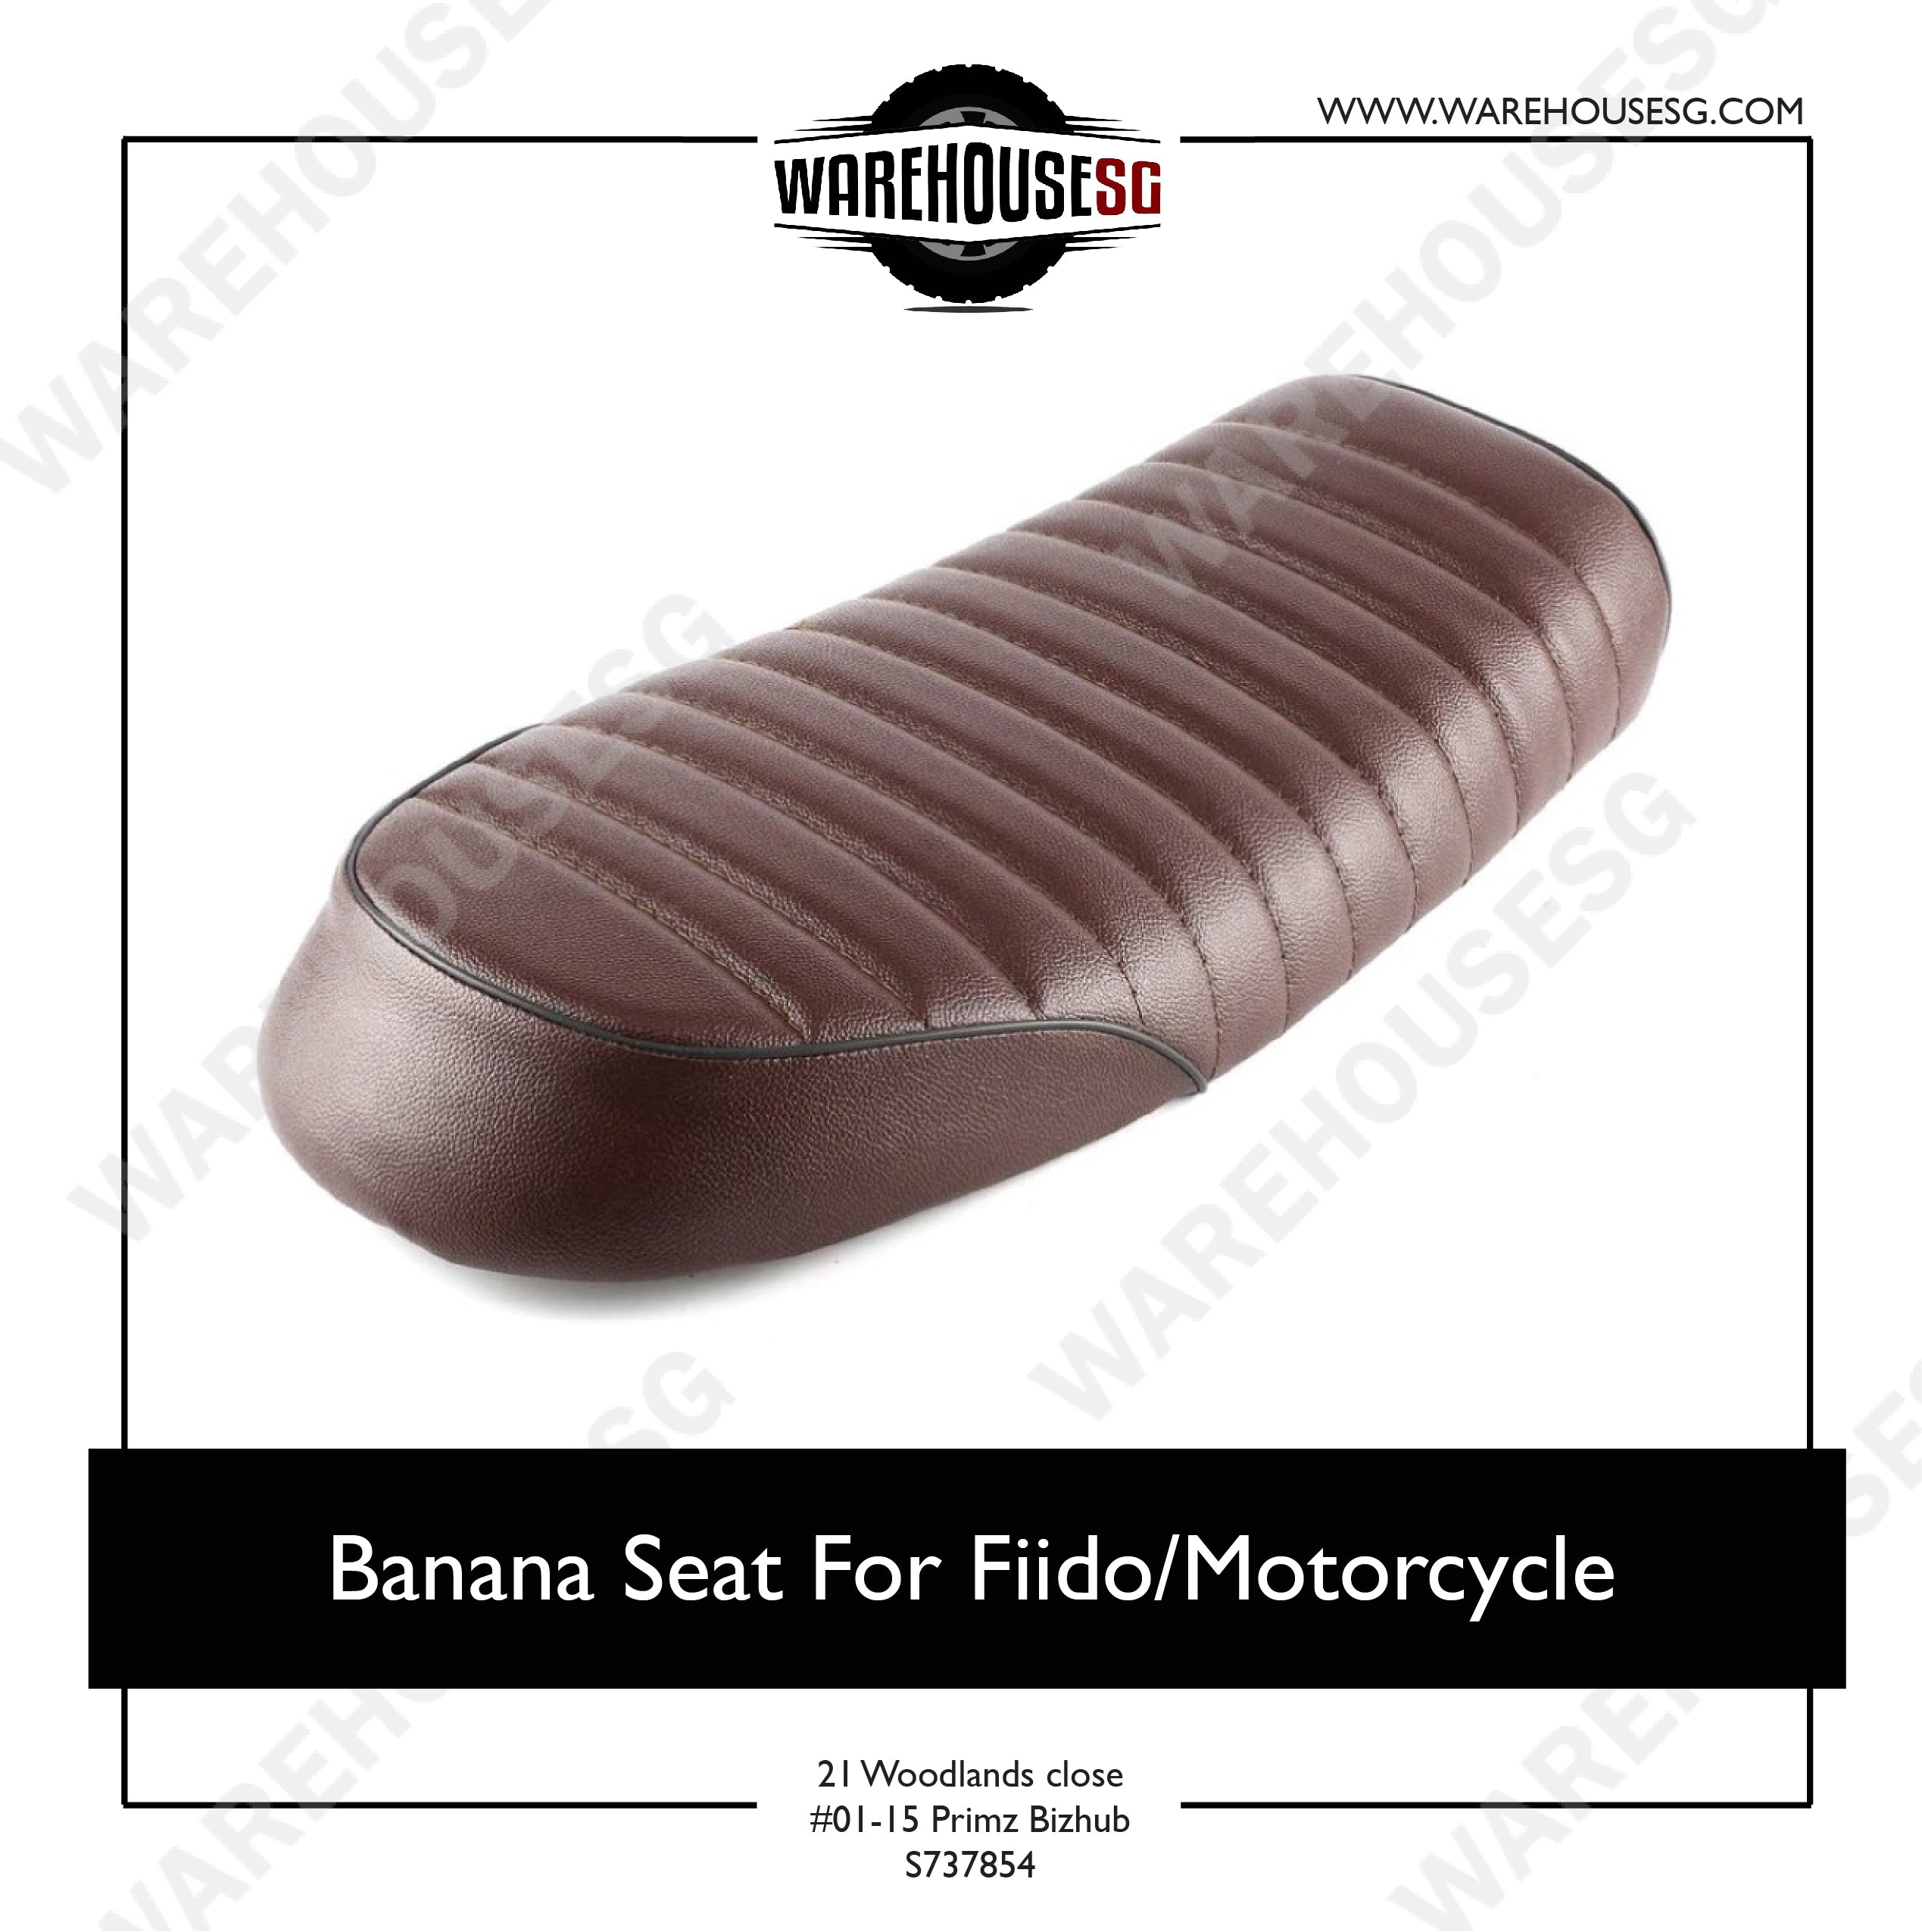 Banana Seat For Fiido/Motorcycle